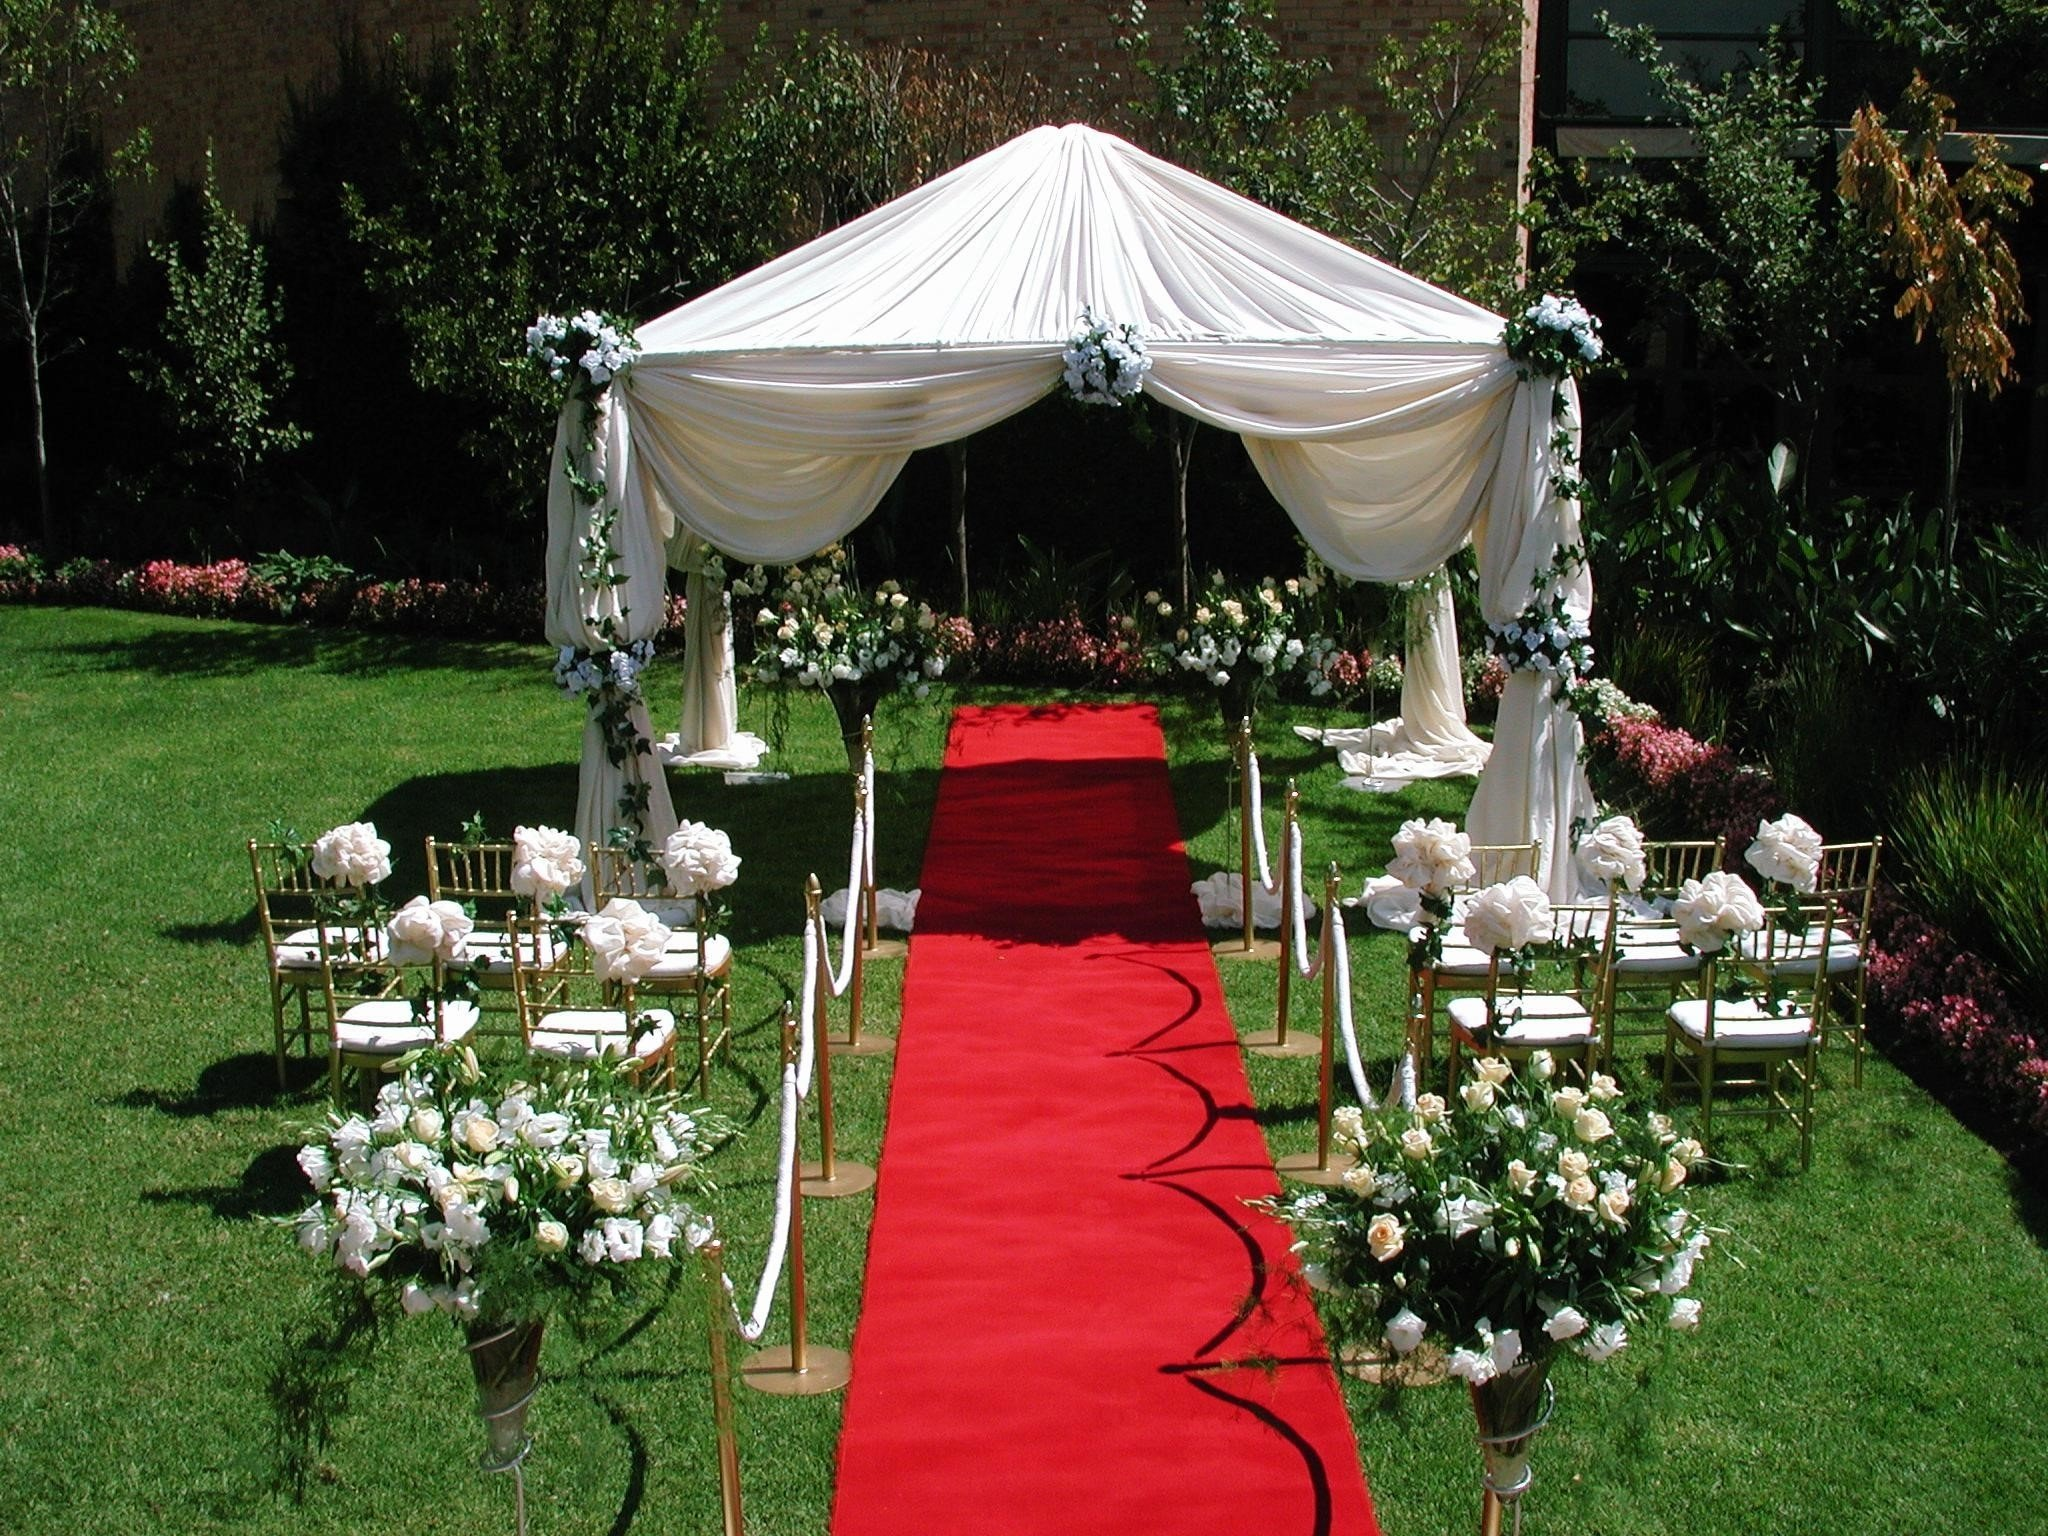 10 nice backyard wedding ideas on a budget winsome backyard wedding reception ideas on a budget